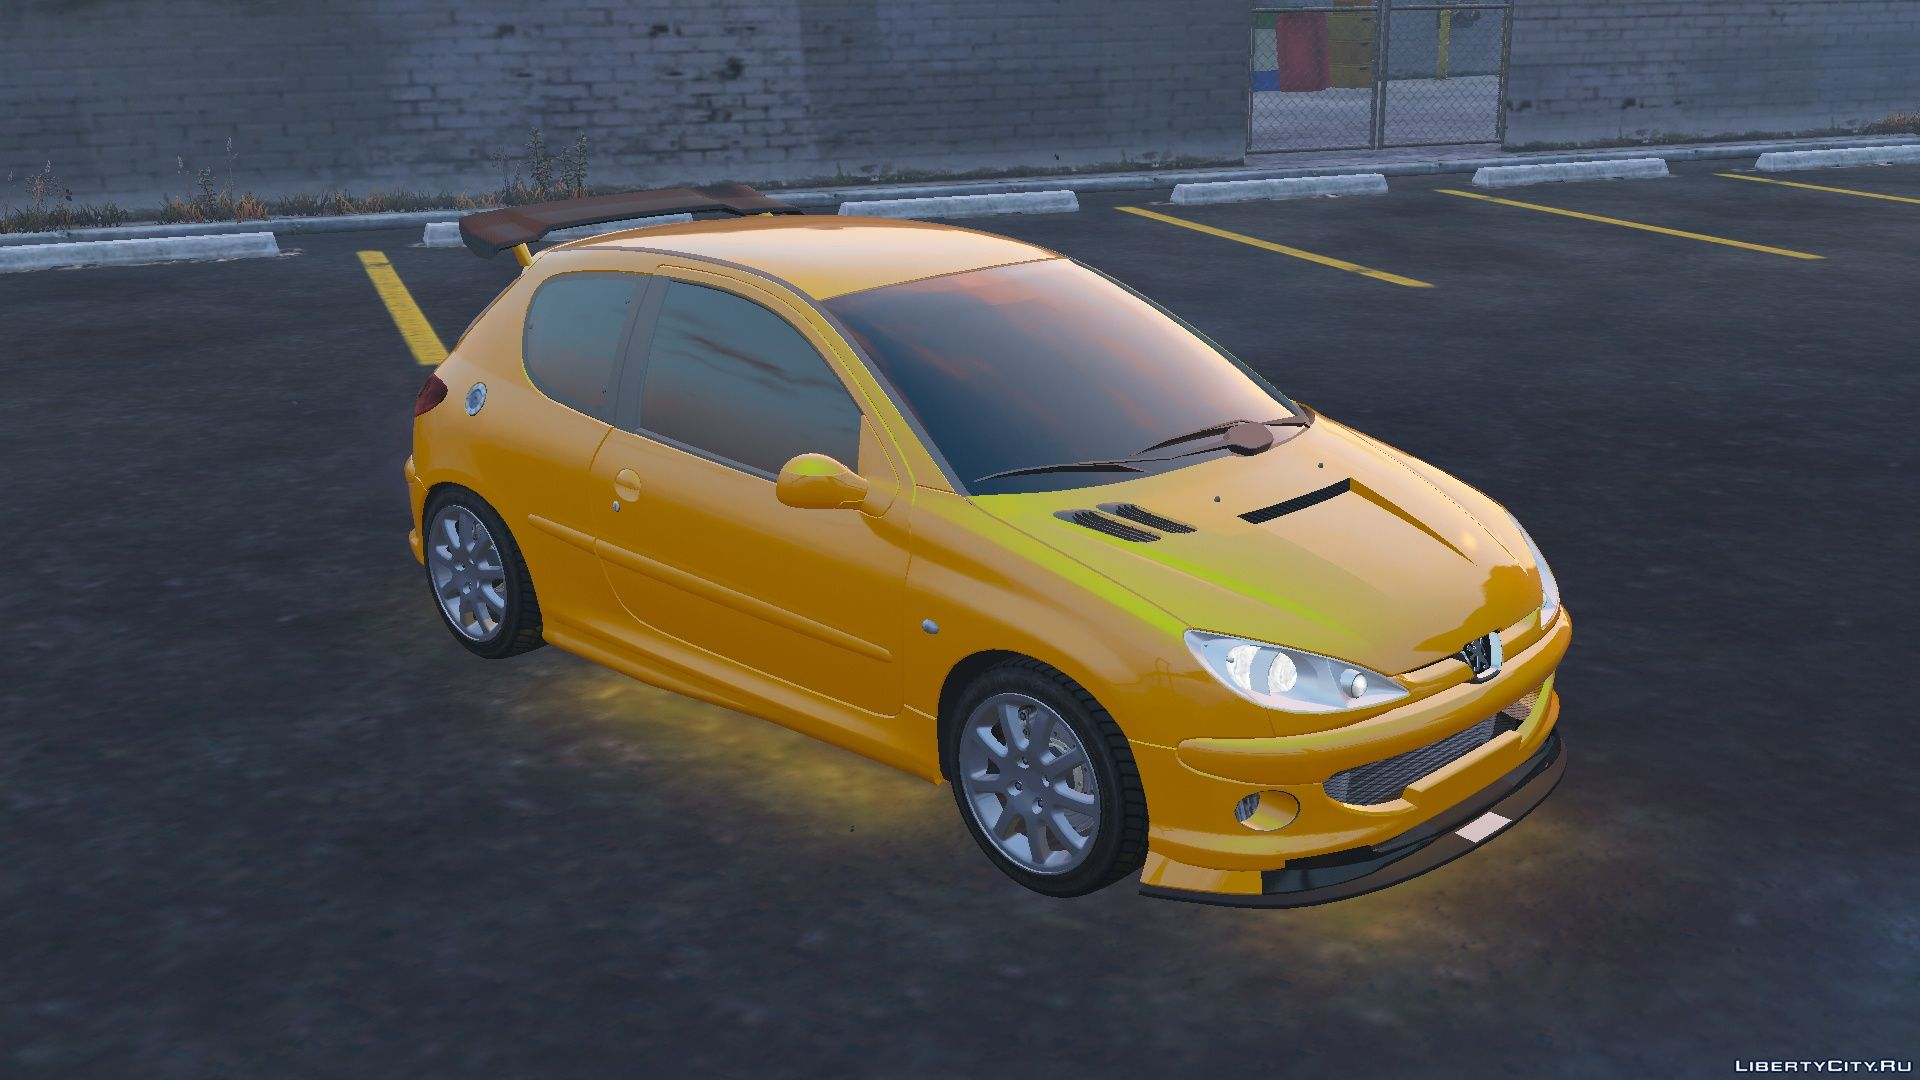 Peugeot 206 GTi [Add-On | Tuning] [FINAL] for GTA 5